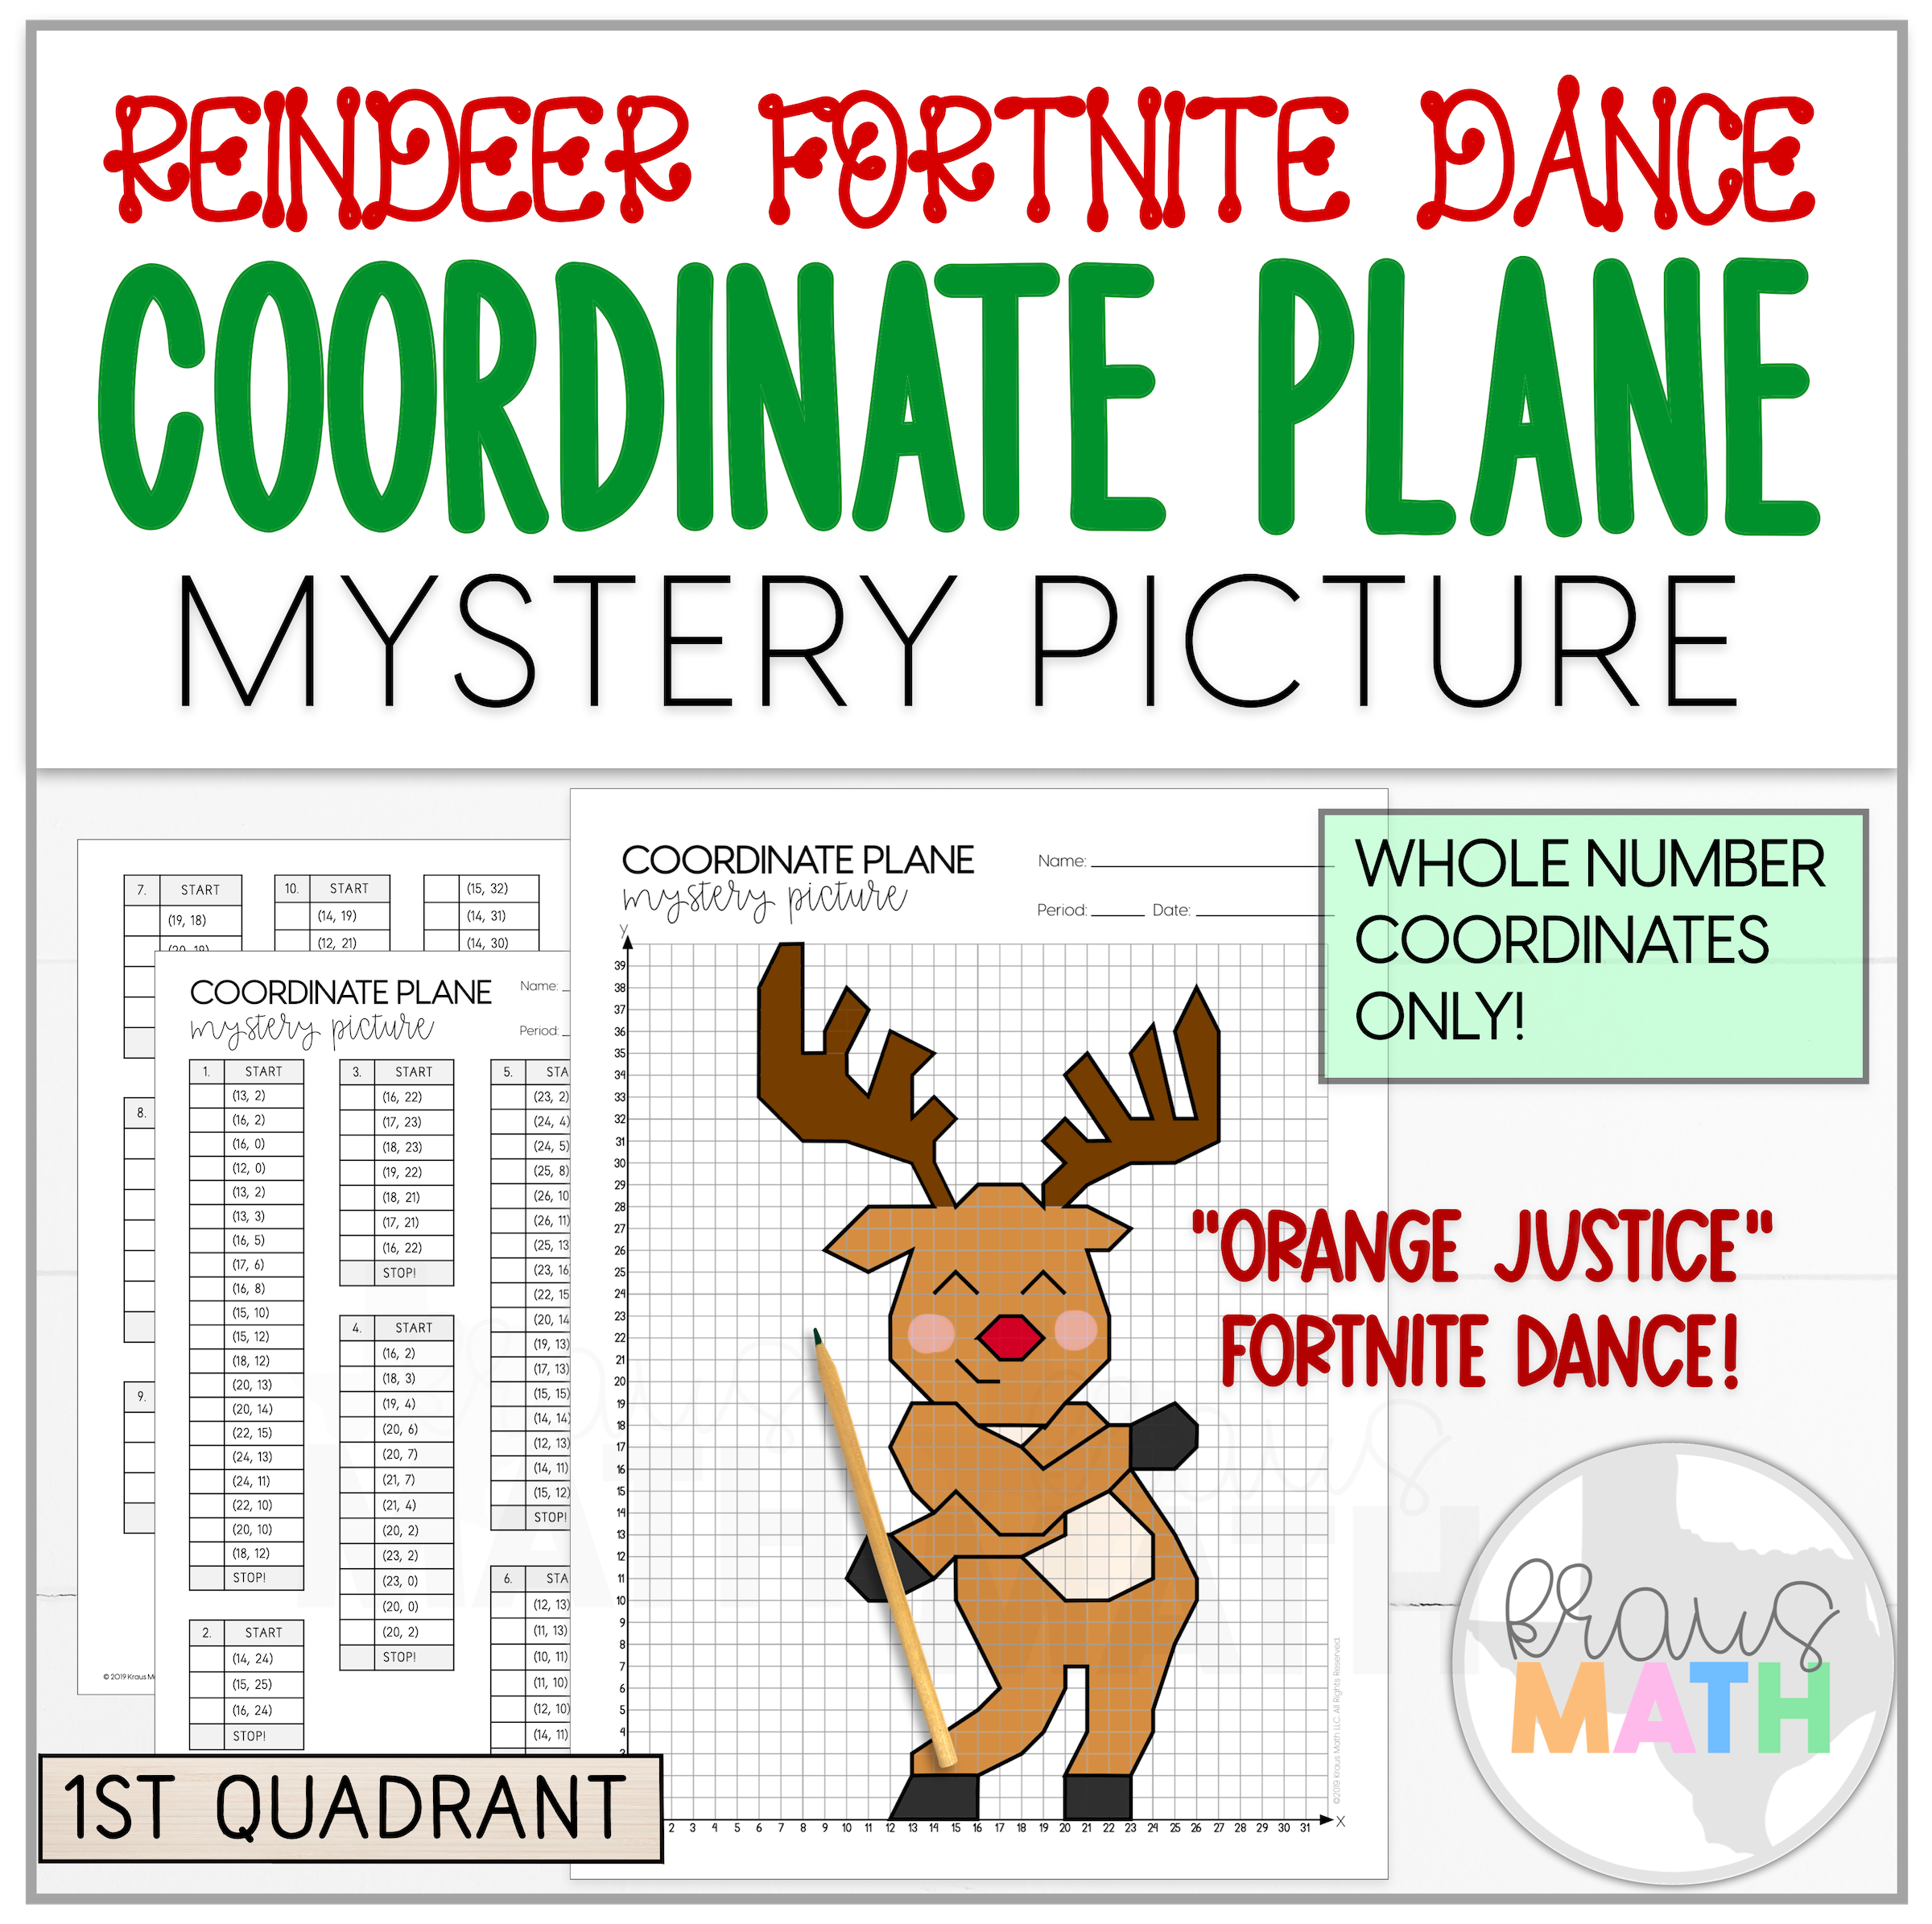 Reindeer Fortnite Orange Justice Dance Coordinate Plane Mystery Picture 1st Quadrant Kraus Math Mystery Pictures Coordinate Plane Coordinate Plane Graphing [ 2390 x 2400 Pixel ]